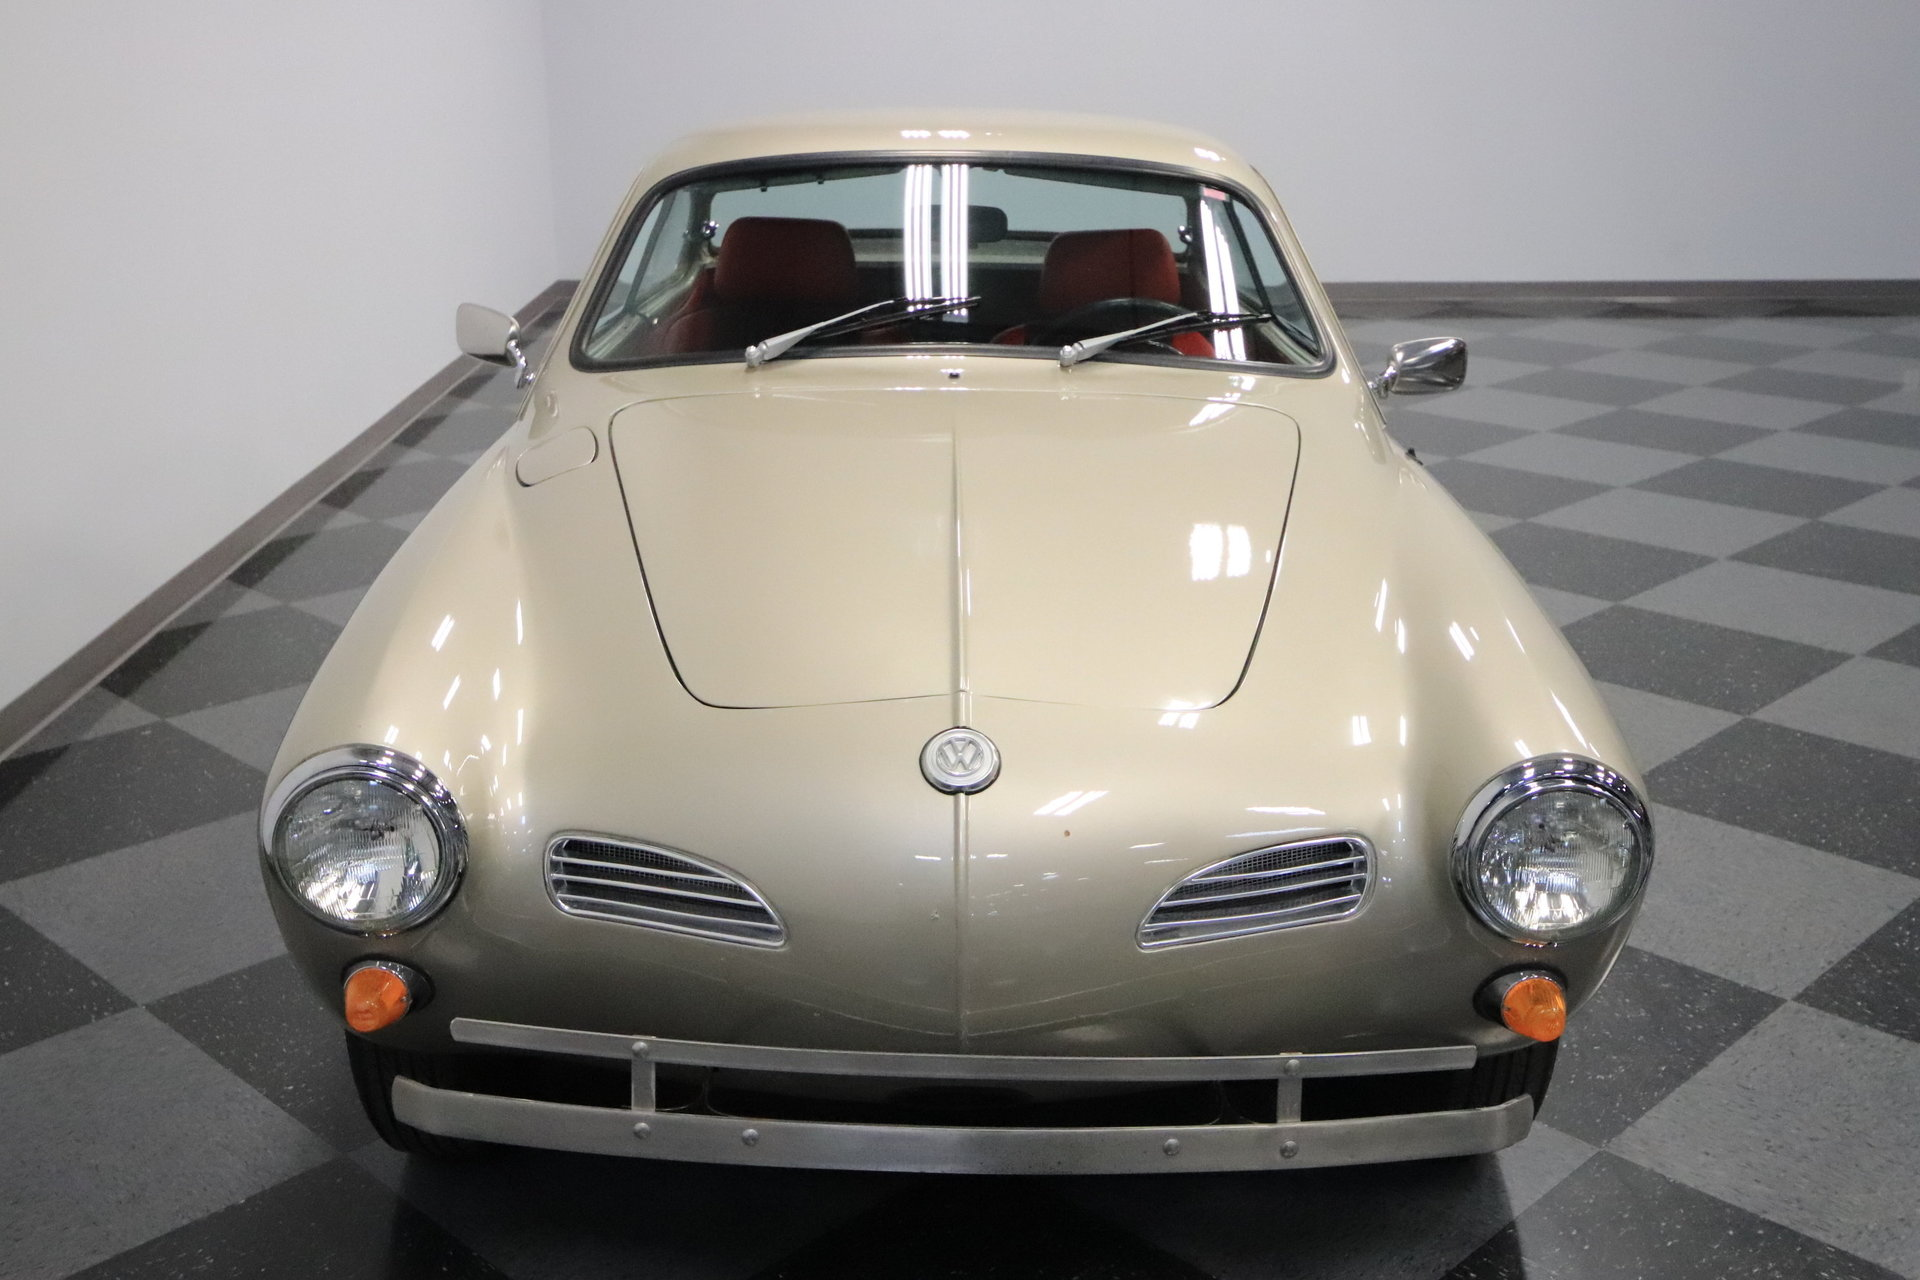 house ghia by of insurance lawrence karmann volkswagen to car com brought sale eugene pin for rometsch myhouseofinsurance you